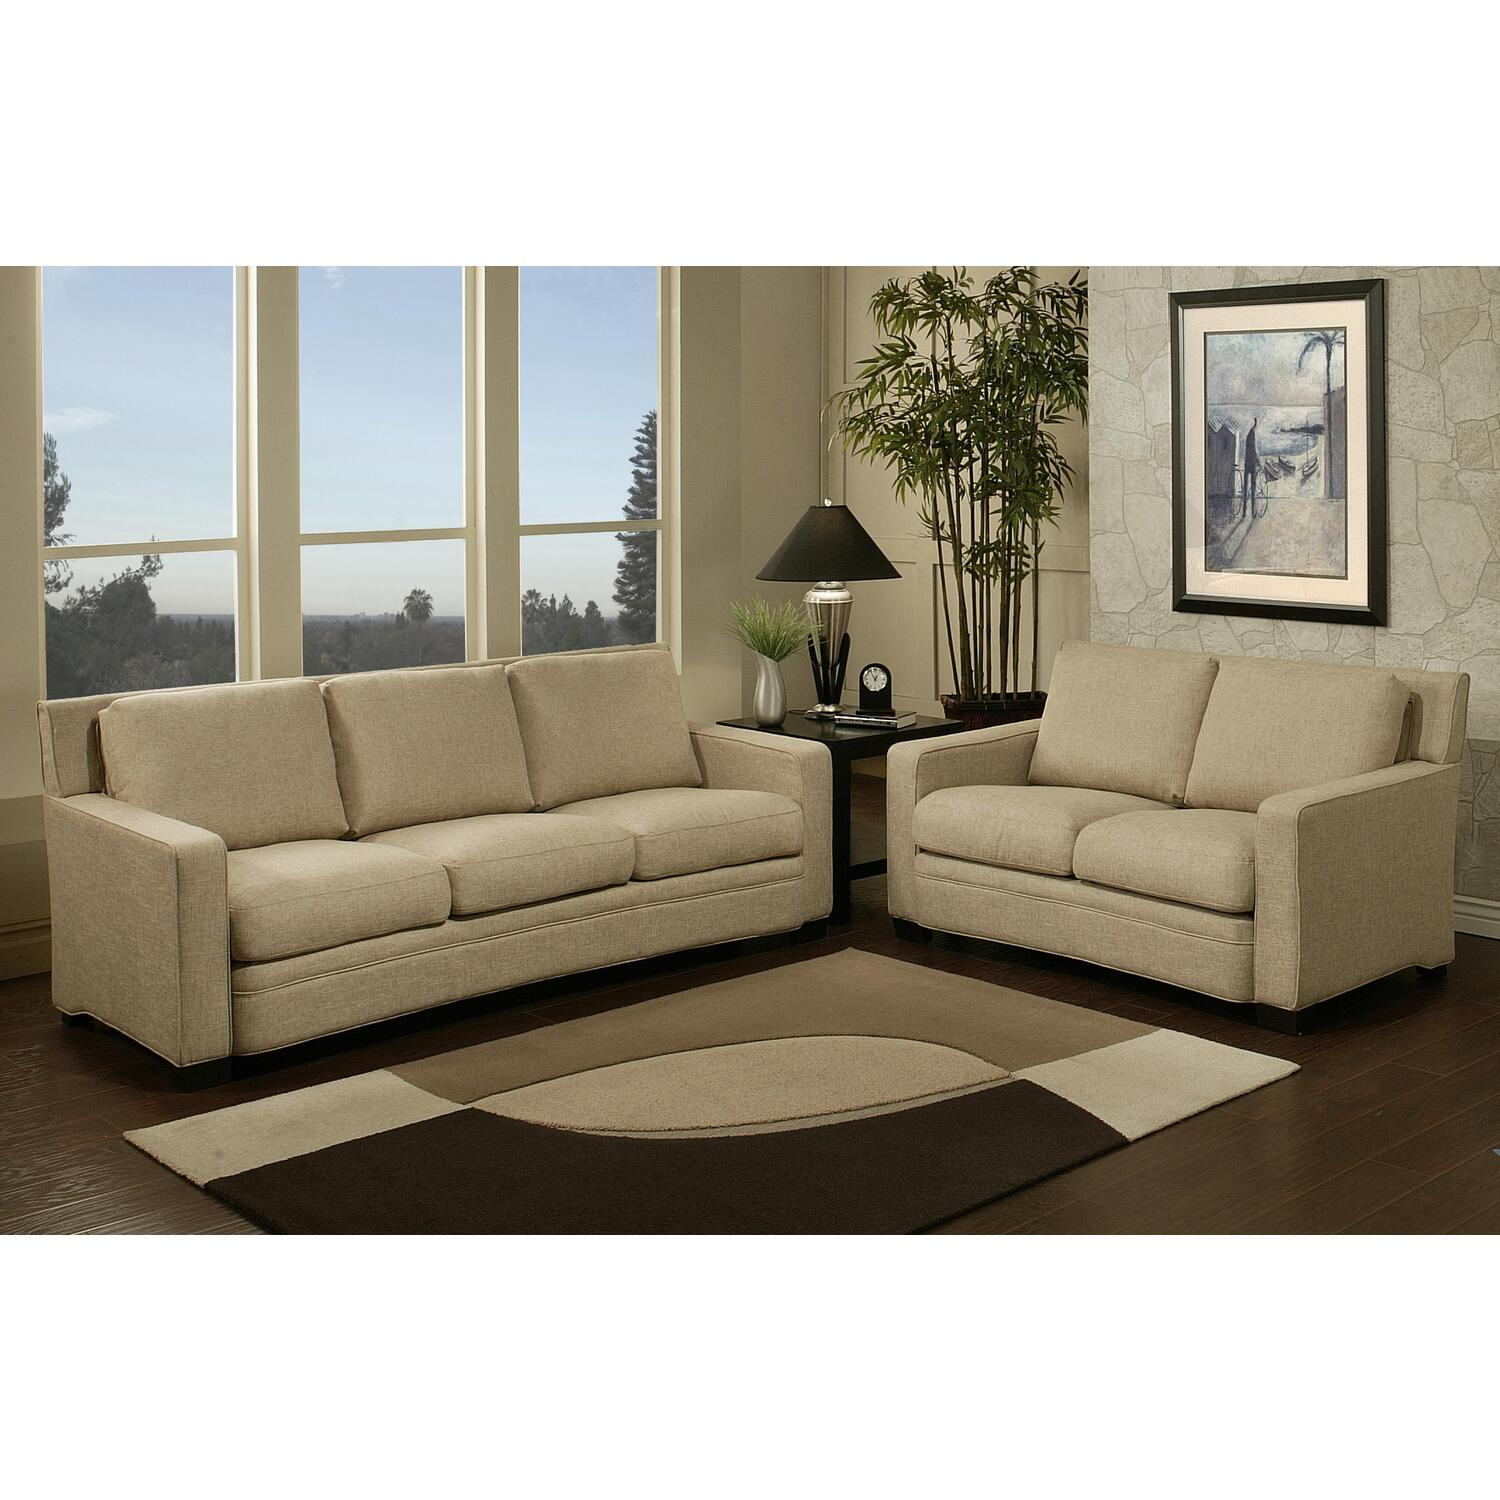 Fabric sofa set interior home design Sofa set designs for home